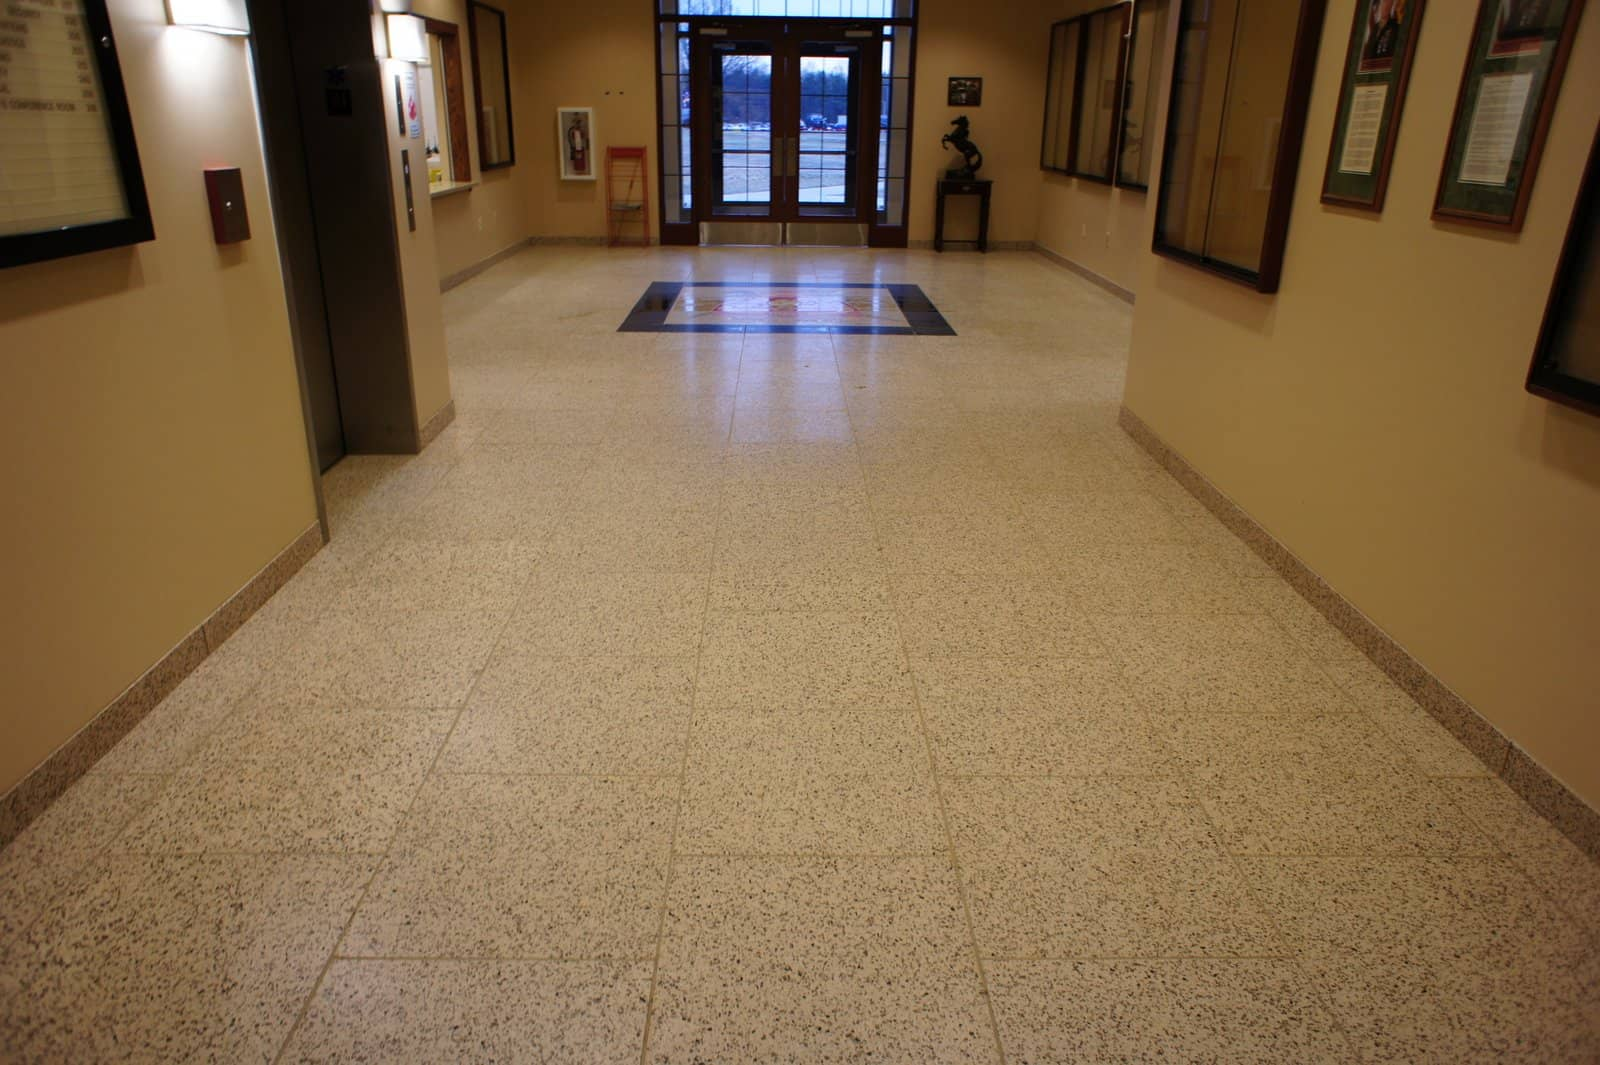 Terrazzo tile interior design contemporary tile design Interior tile floor designs